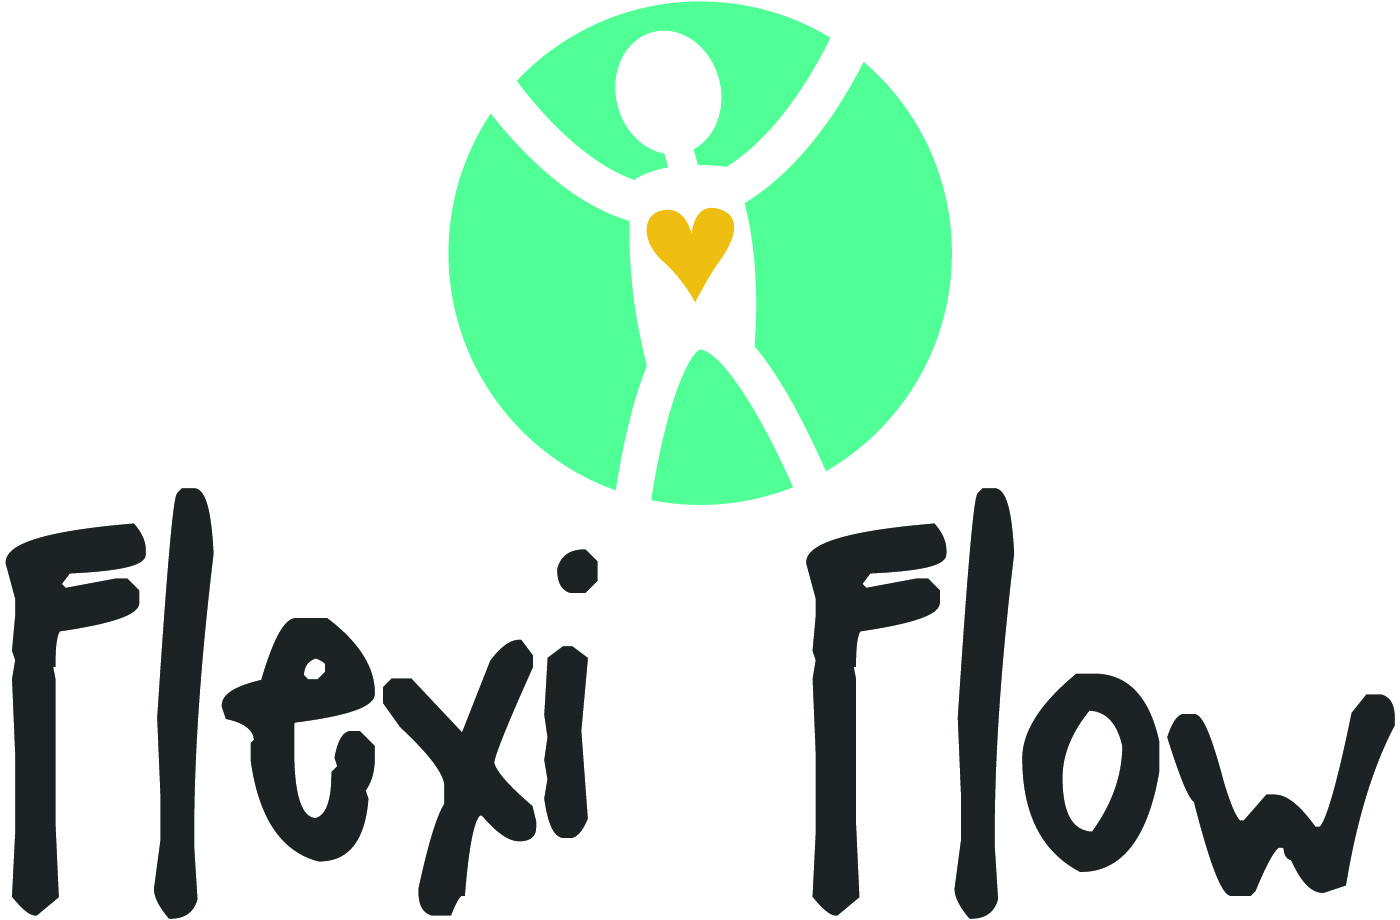 Flexi Flow Learning Innovation & Wellbeing